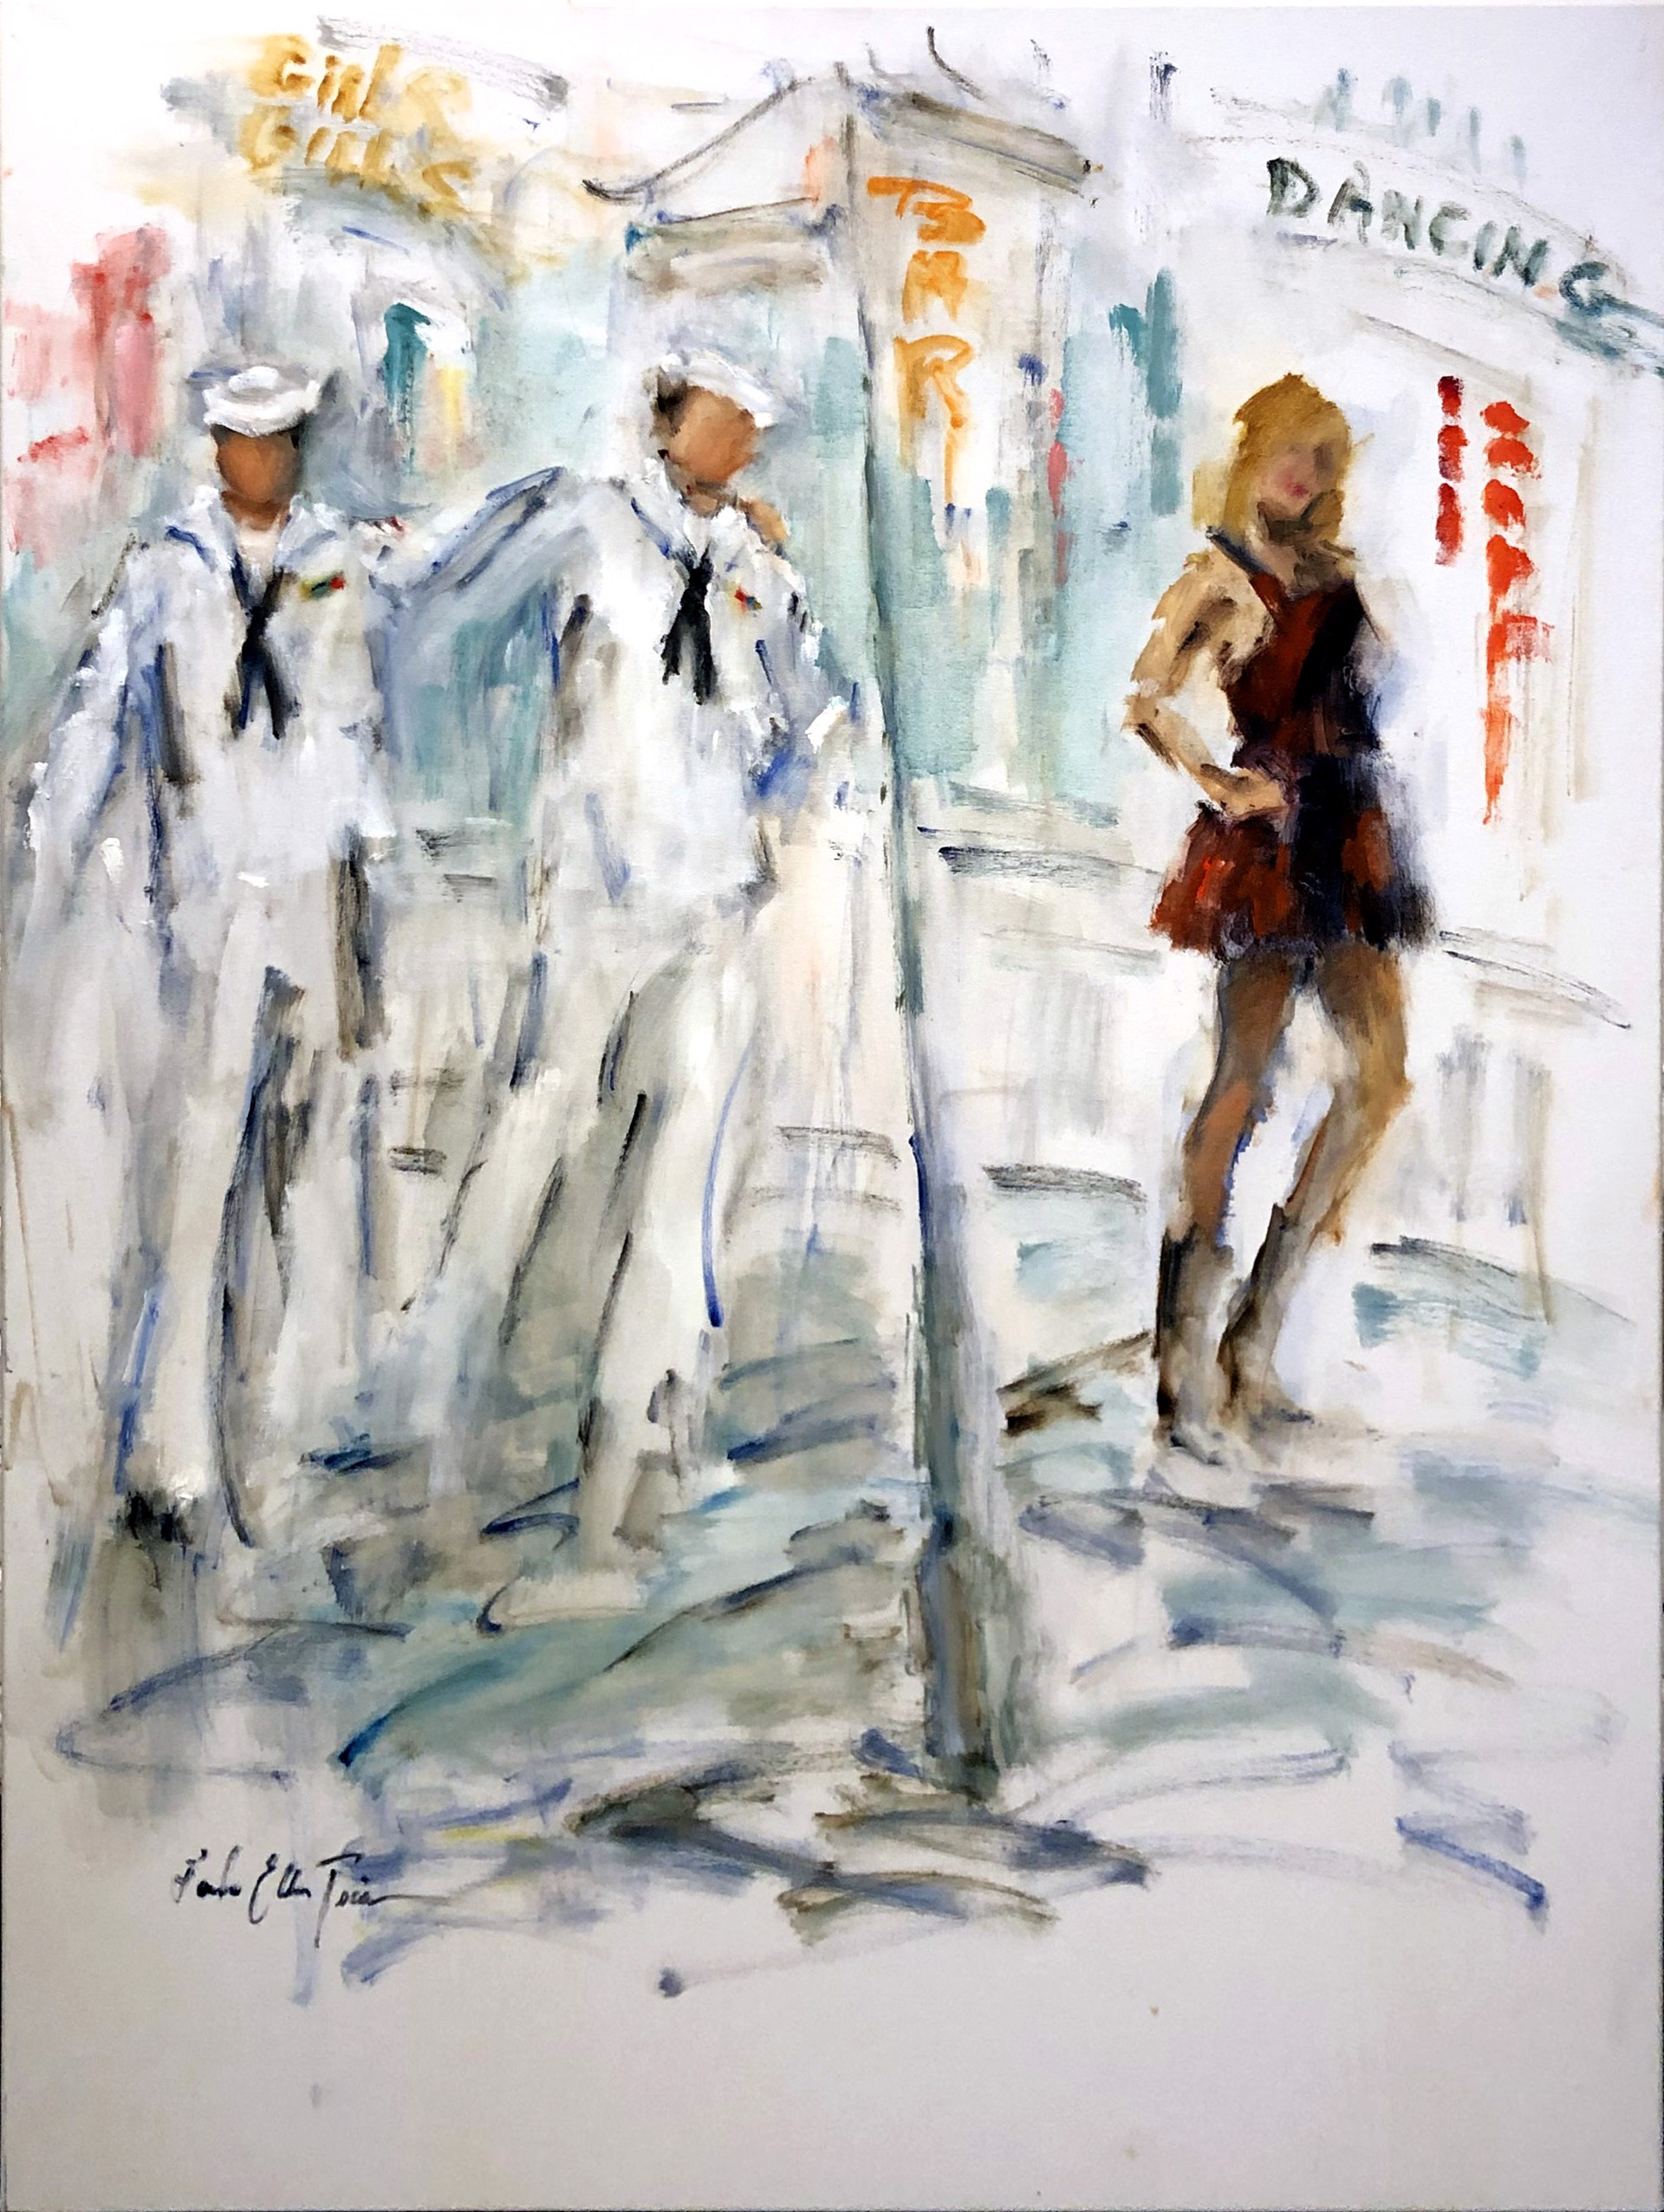 She Likes to Dance by Linda Ellen Price